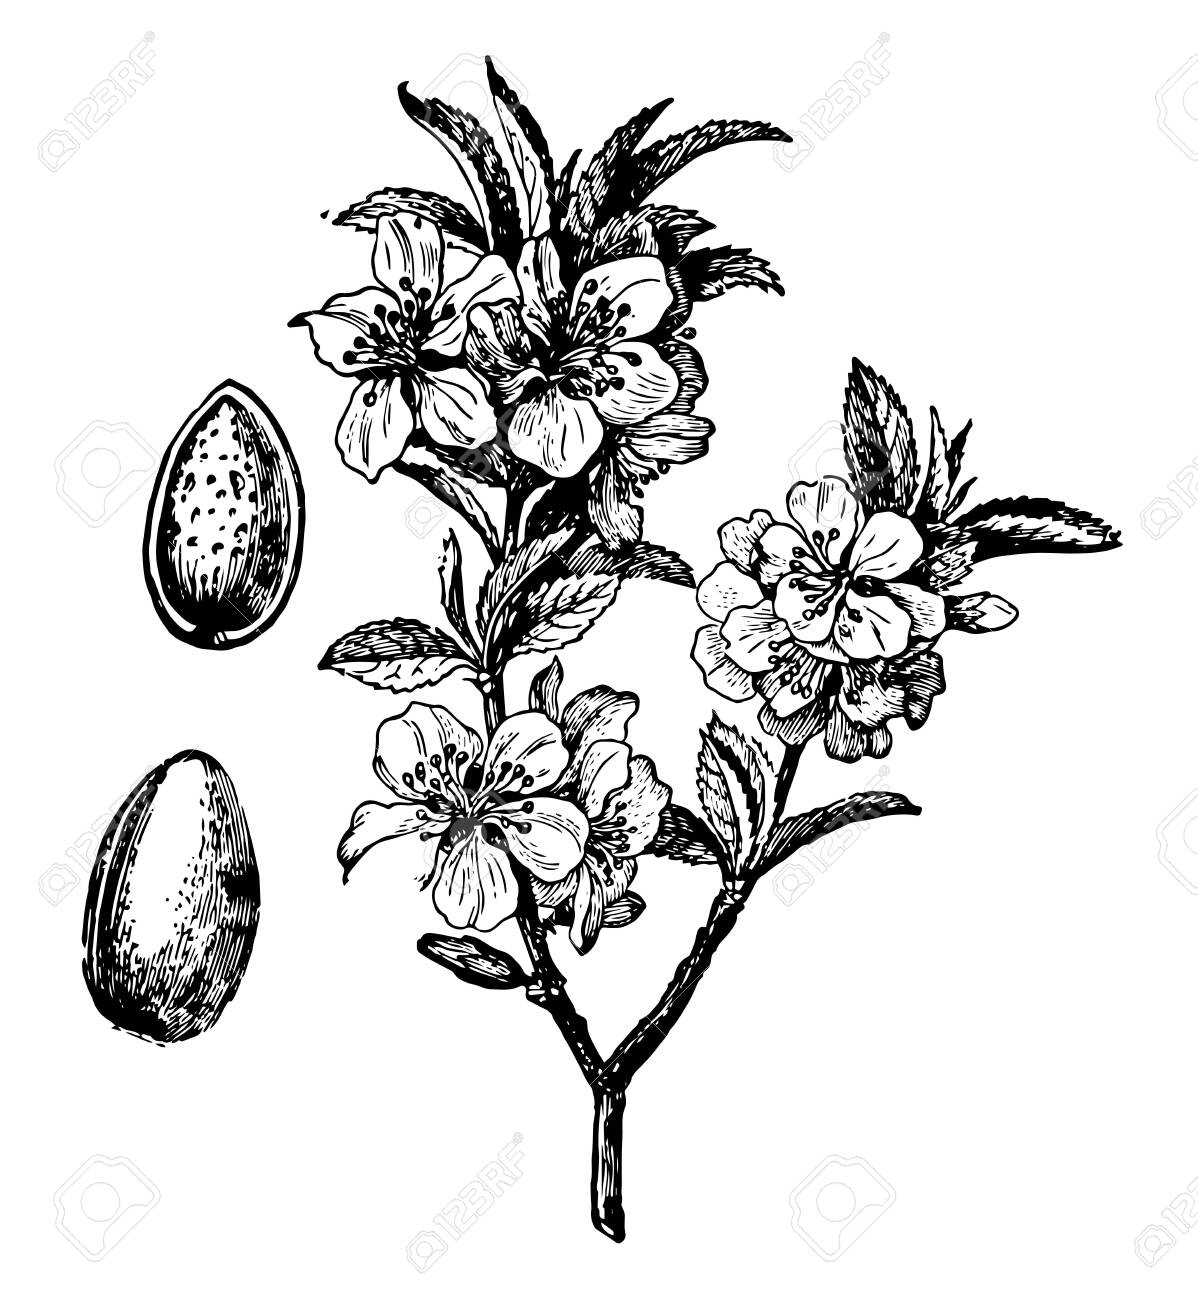 In This Image The Branch Blossom And Fruit Are The Almond Tree Royalty Free Cliparts Vectors And Stock Illustration Image 132803975